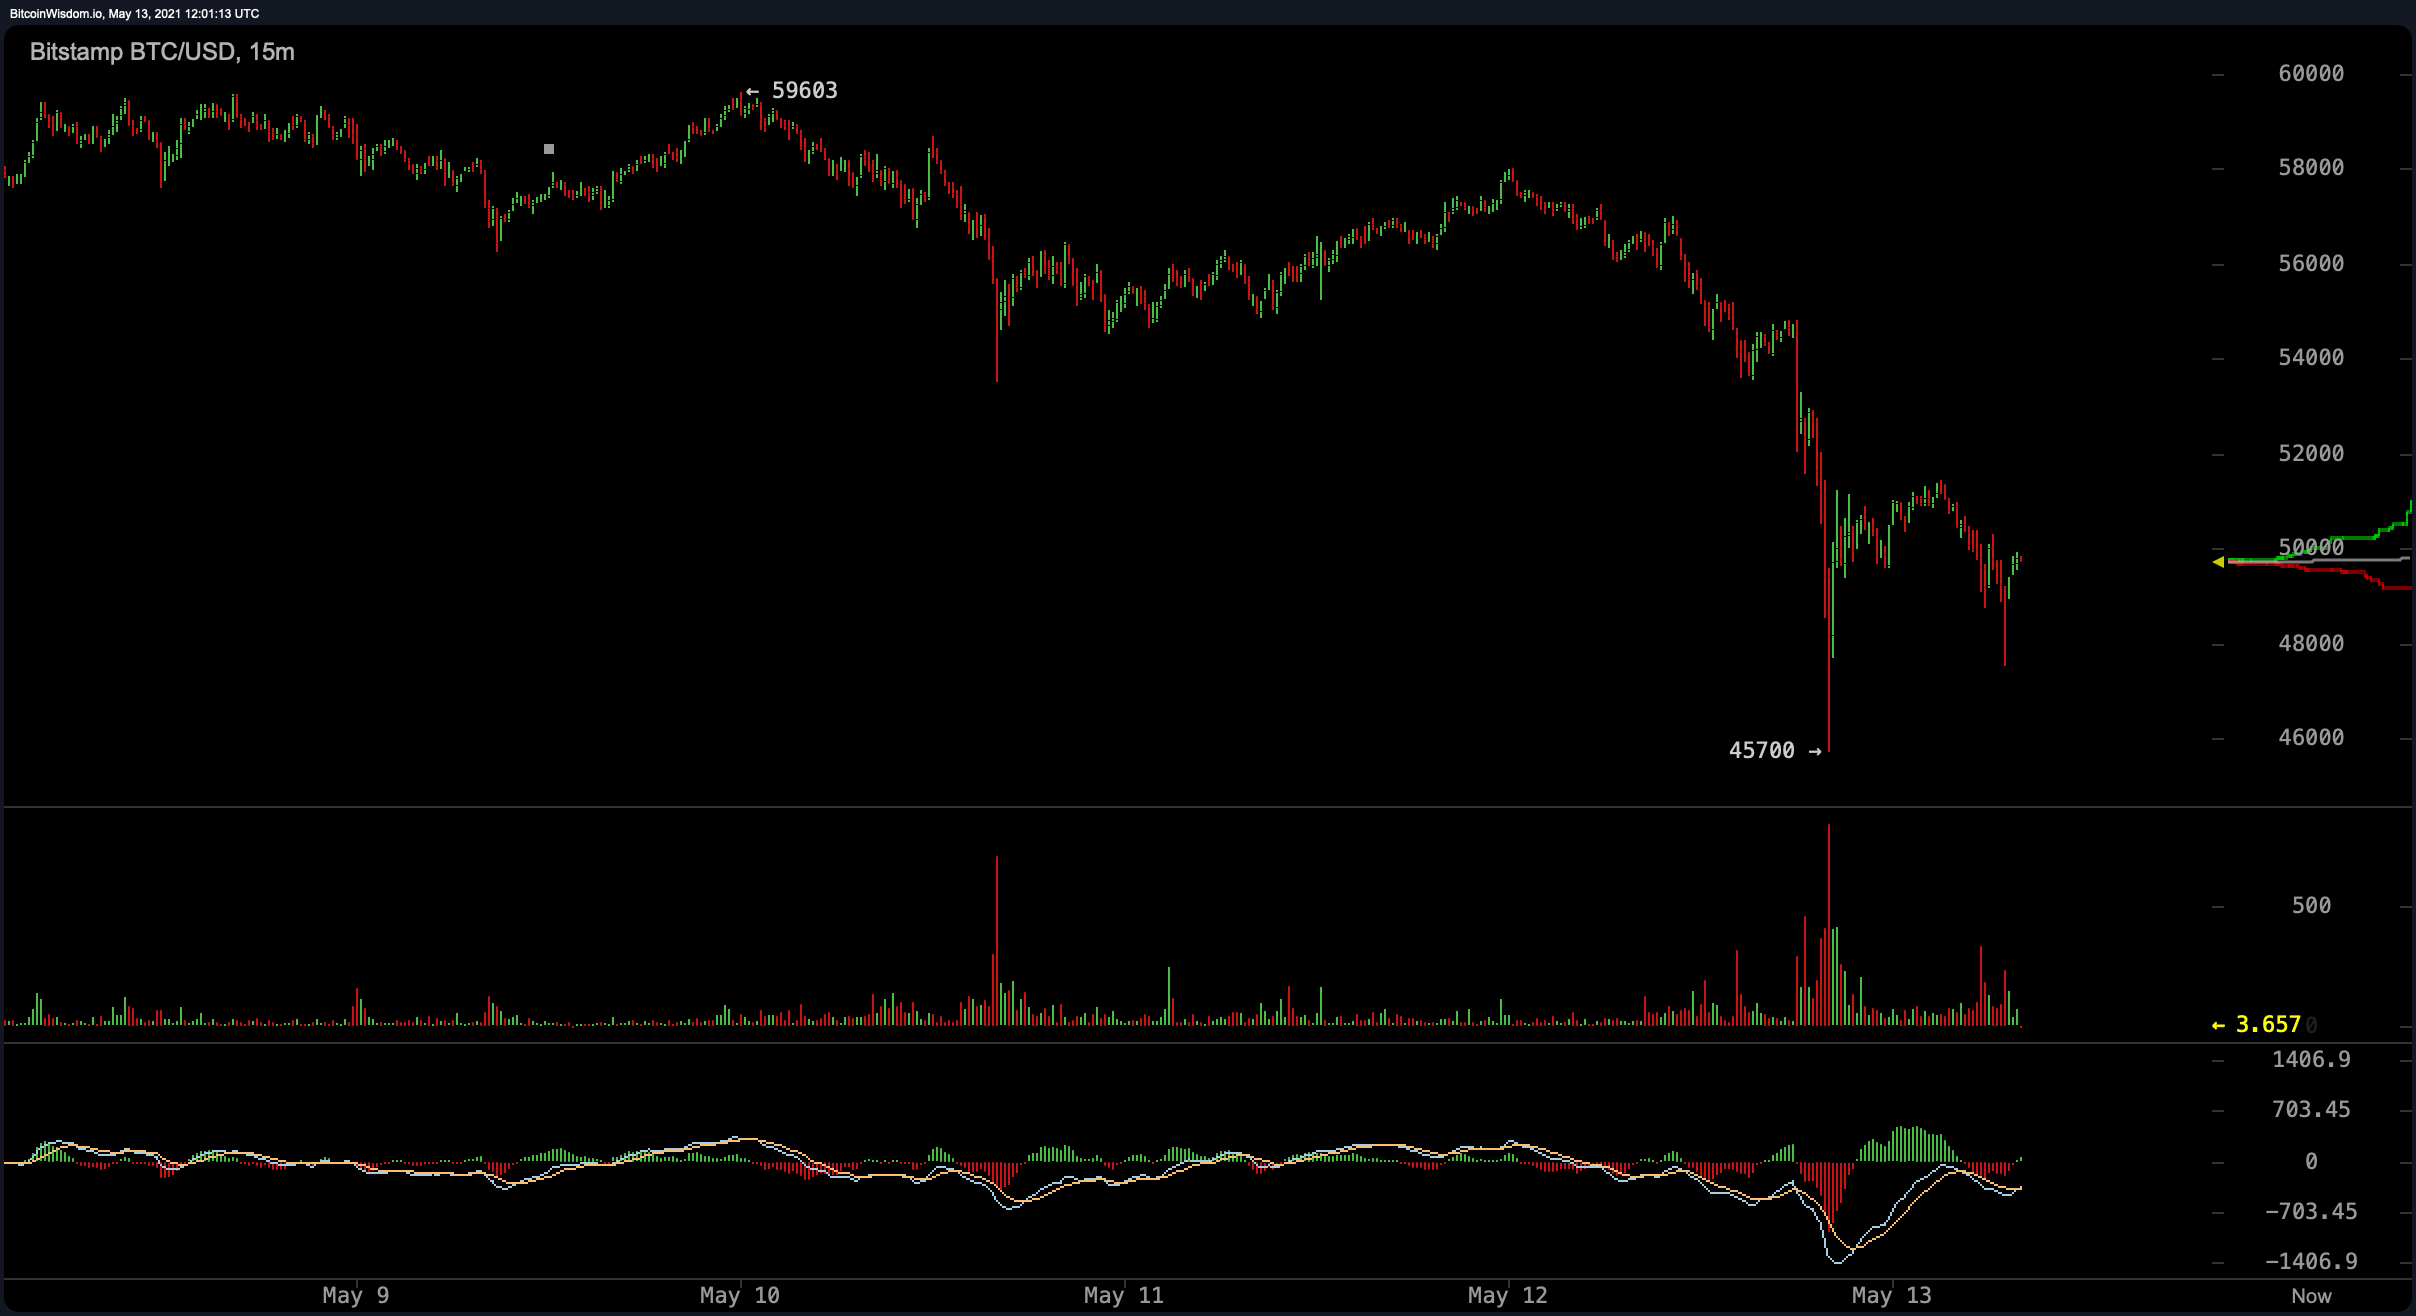 Bitcoin Markets Blood Red After Tesla Announcement, Crypto Economy Sheds Billions – Markets and Prices Bitcoin News